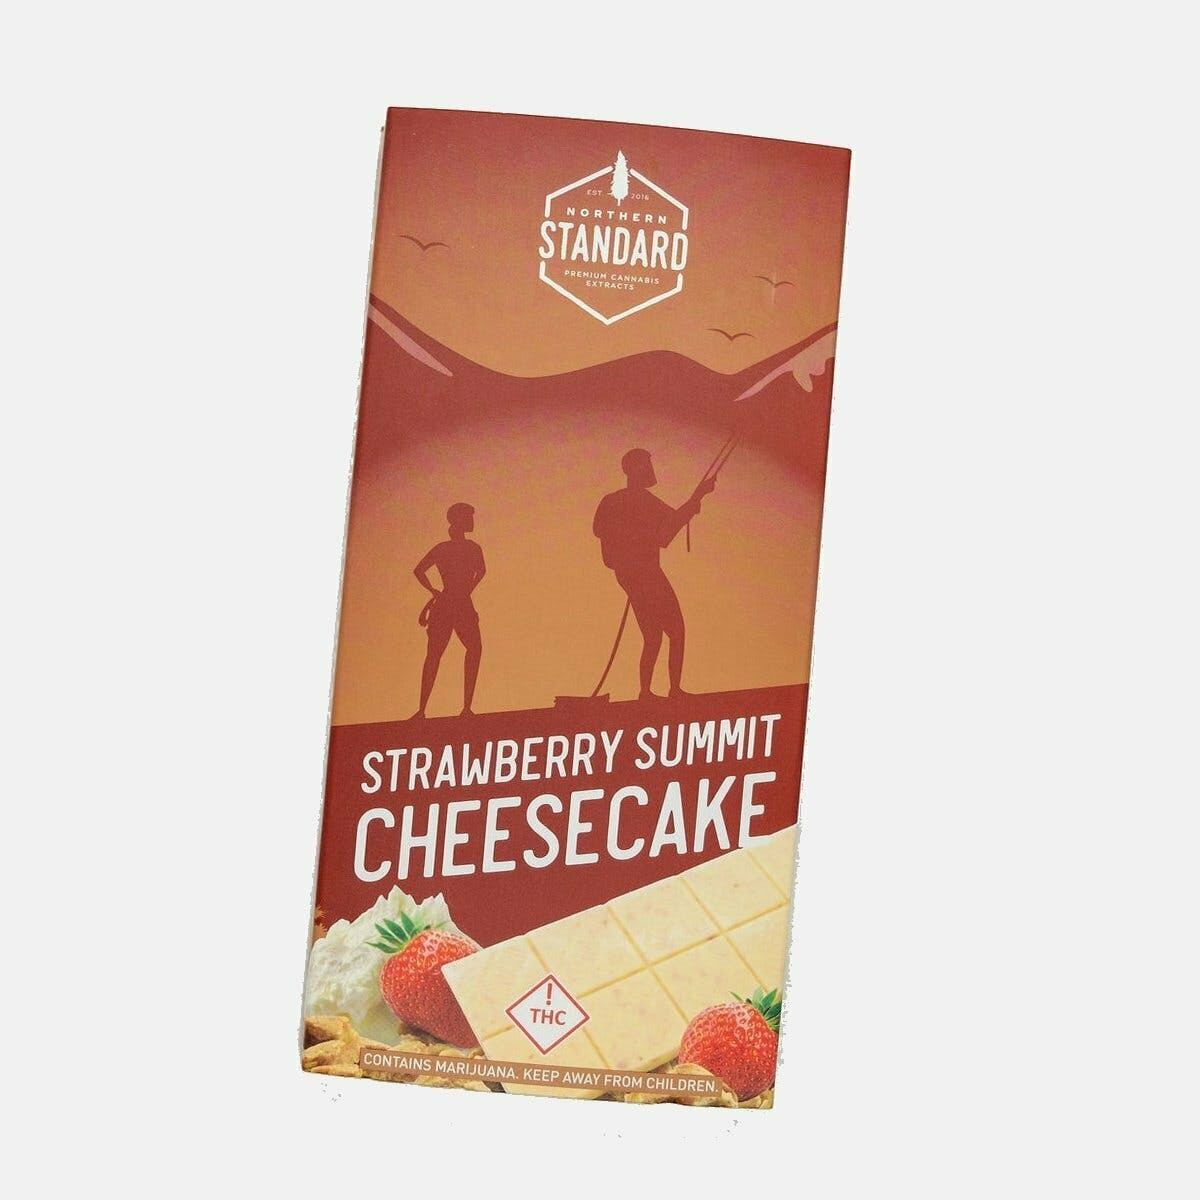 Strawberry Summit Cheesecake Chocolate Bar (1,000mg) by Northern Standard